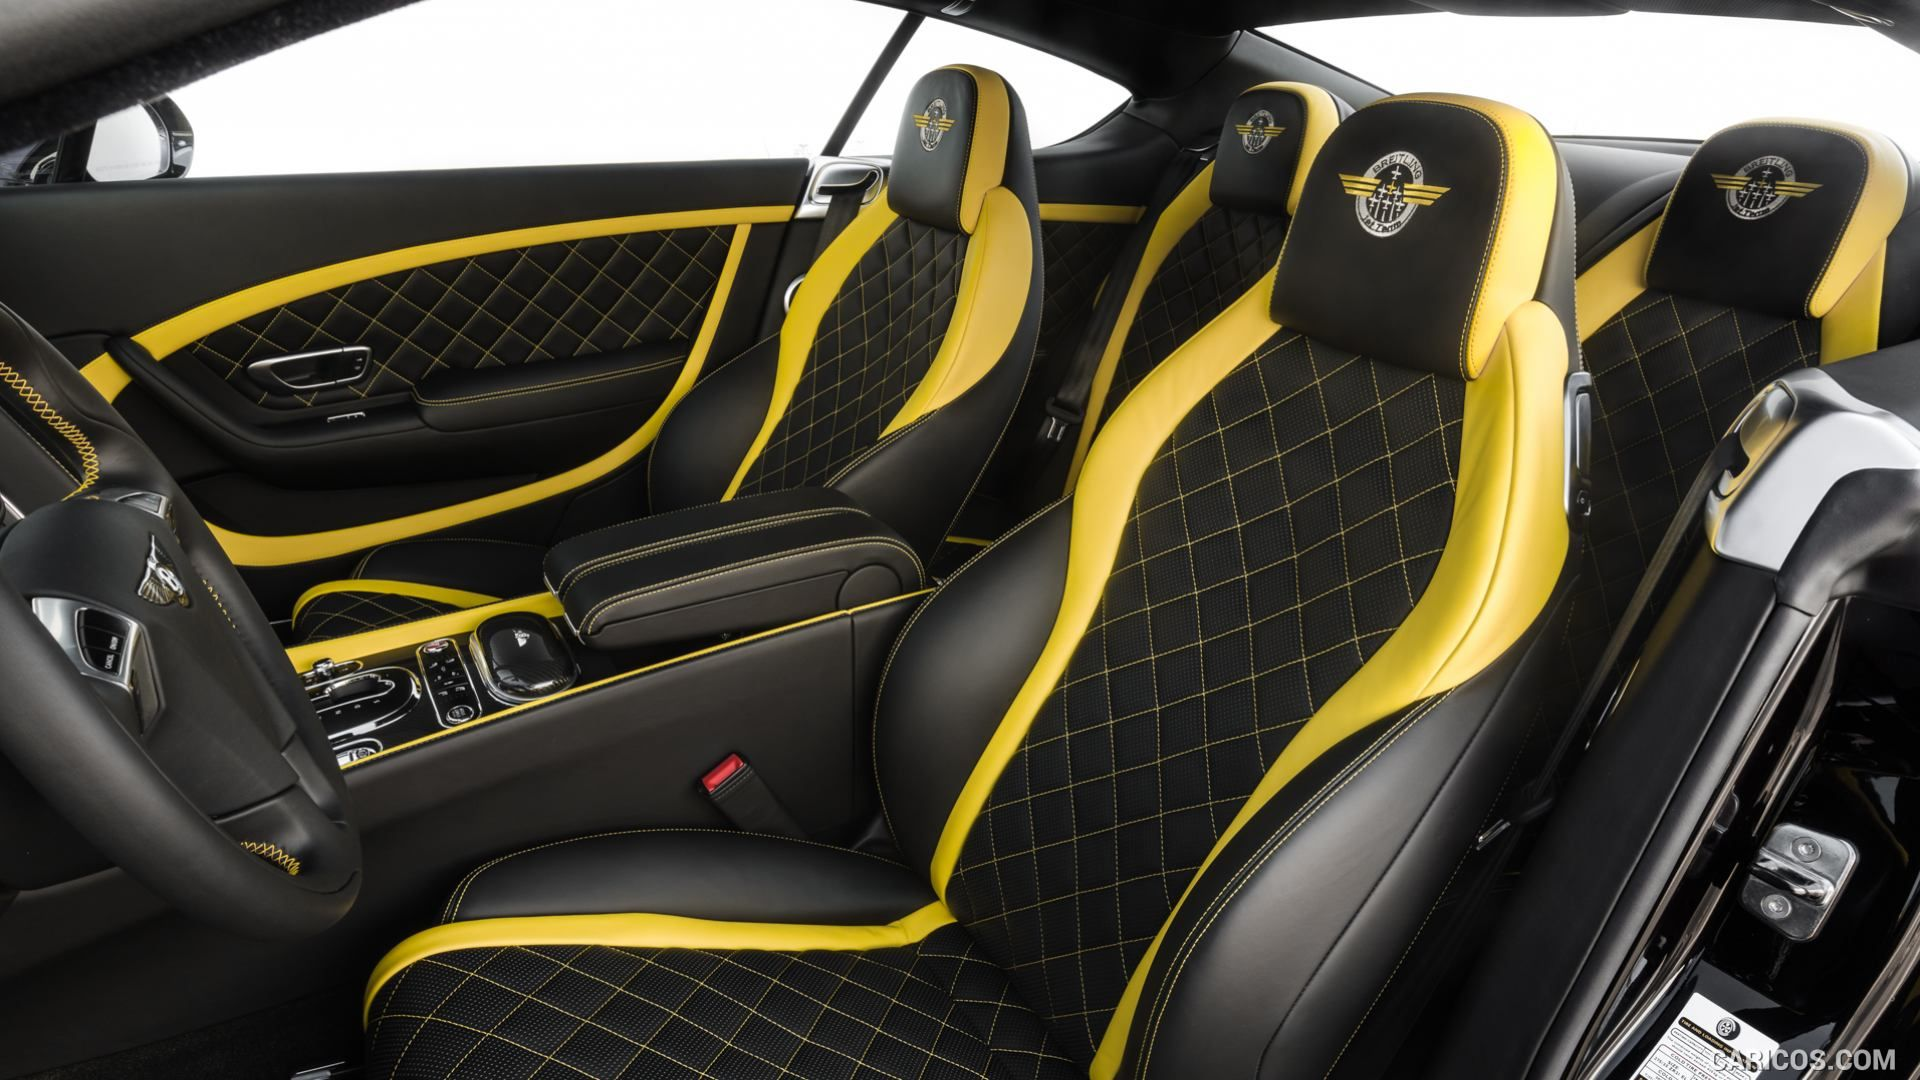 Bentley Continental Gt Speed Black Edition Set For 2017 Yellow And Black And Grey Two T Bentley Continental Gt Speed Bentley Continental Gt Bentley Continental